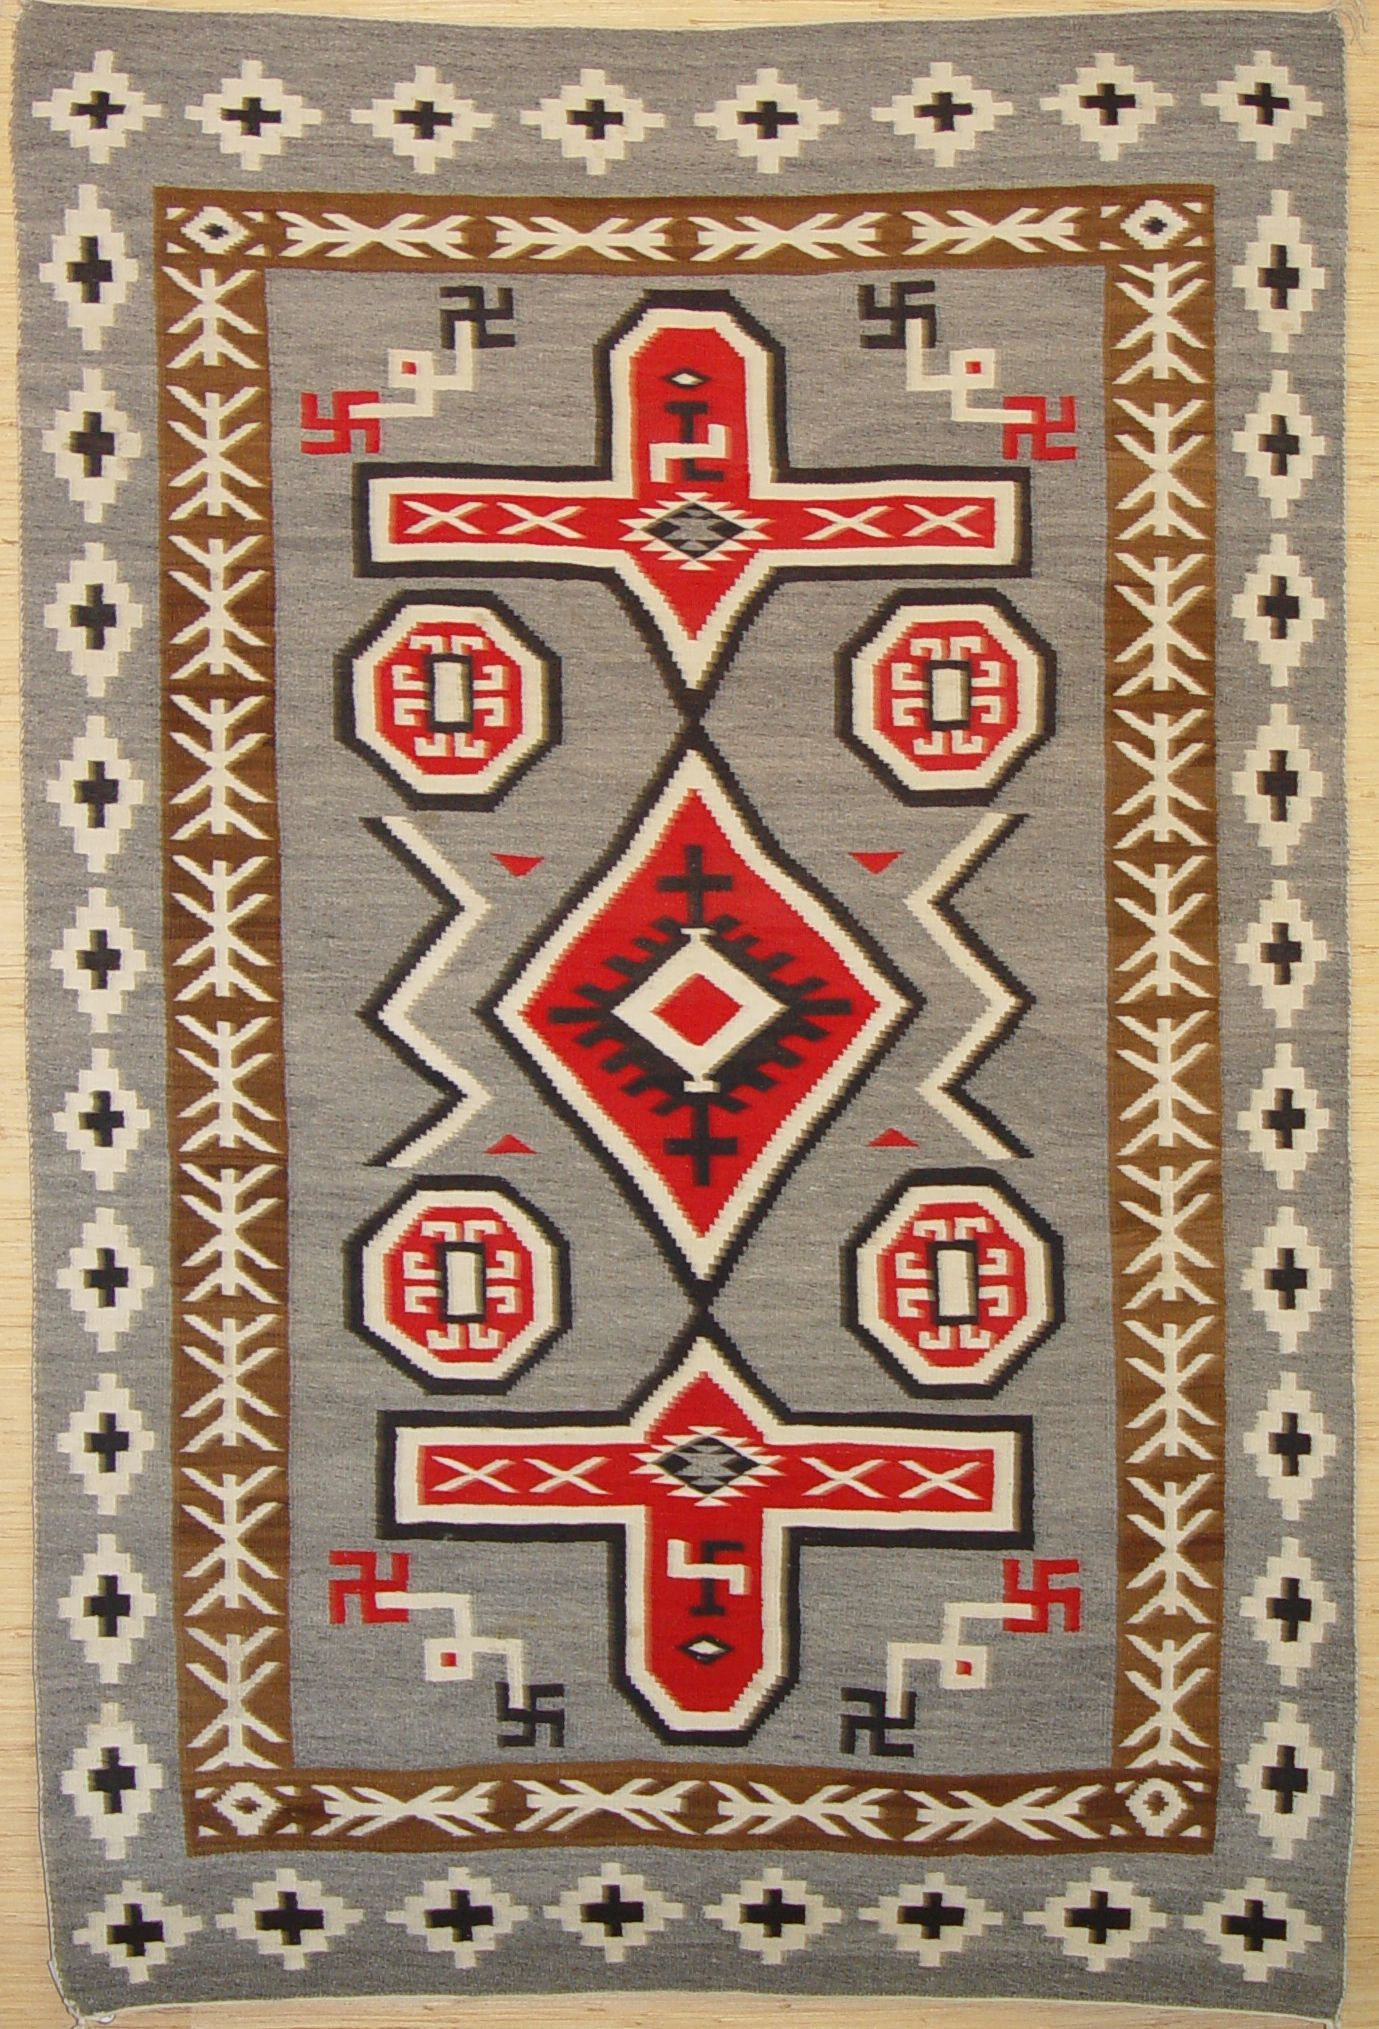 Navajo Rug And Yes Those Were Symbols Were Used Long Before Hitler